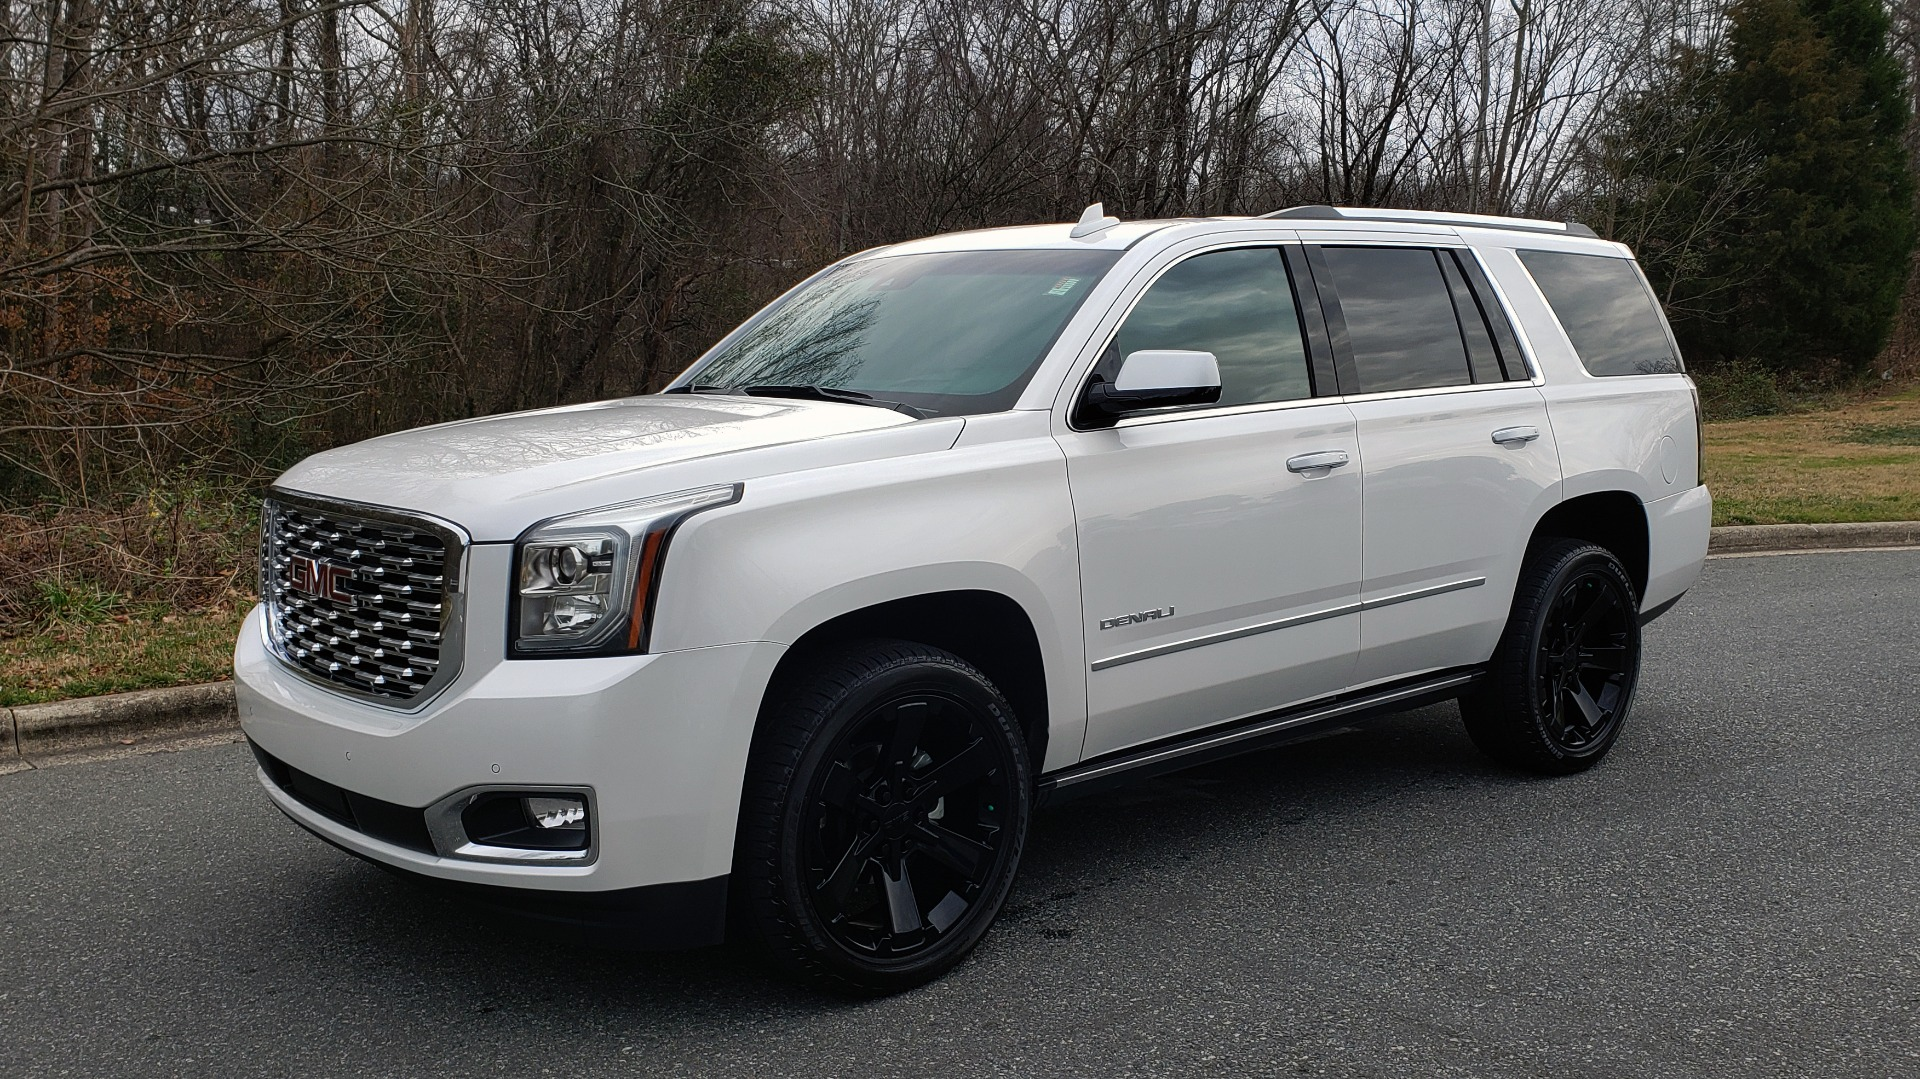 Used 2018 GMC YUKON DENALI 4WD / NAV / SUNROOF / BOSE / 3-ROW / REARVIEW for sale Sold at Formula Imports in Charlotte NC 28227 1